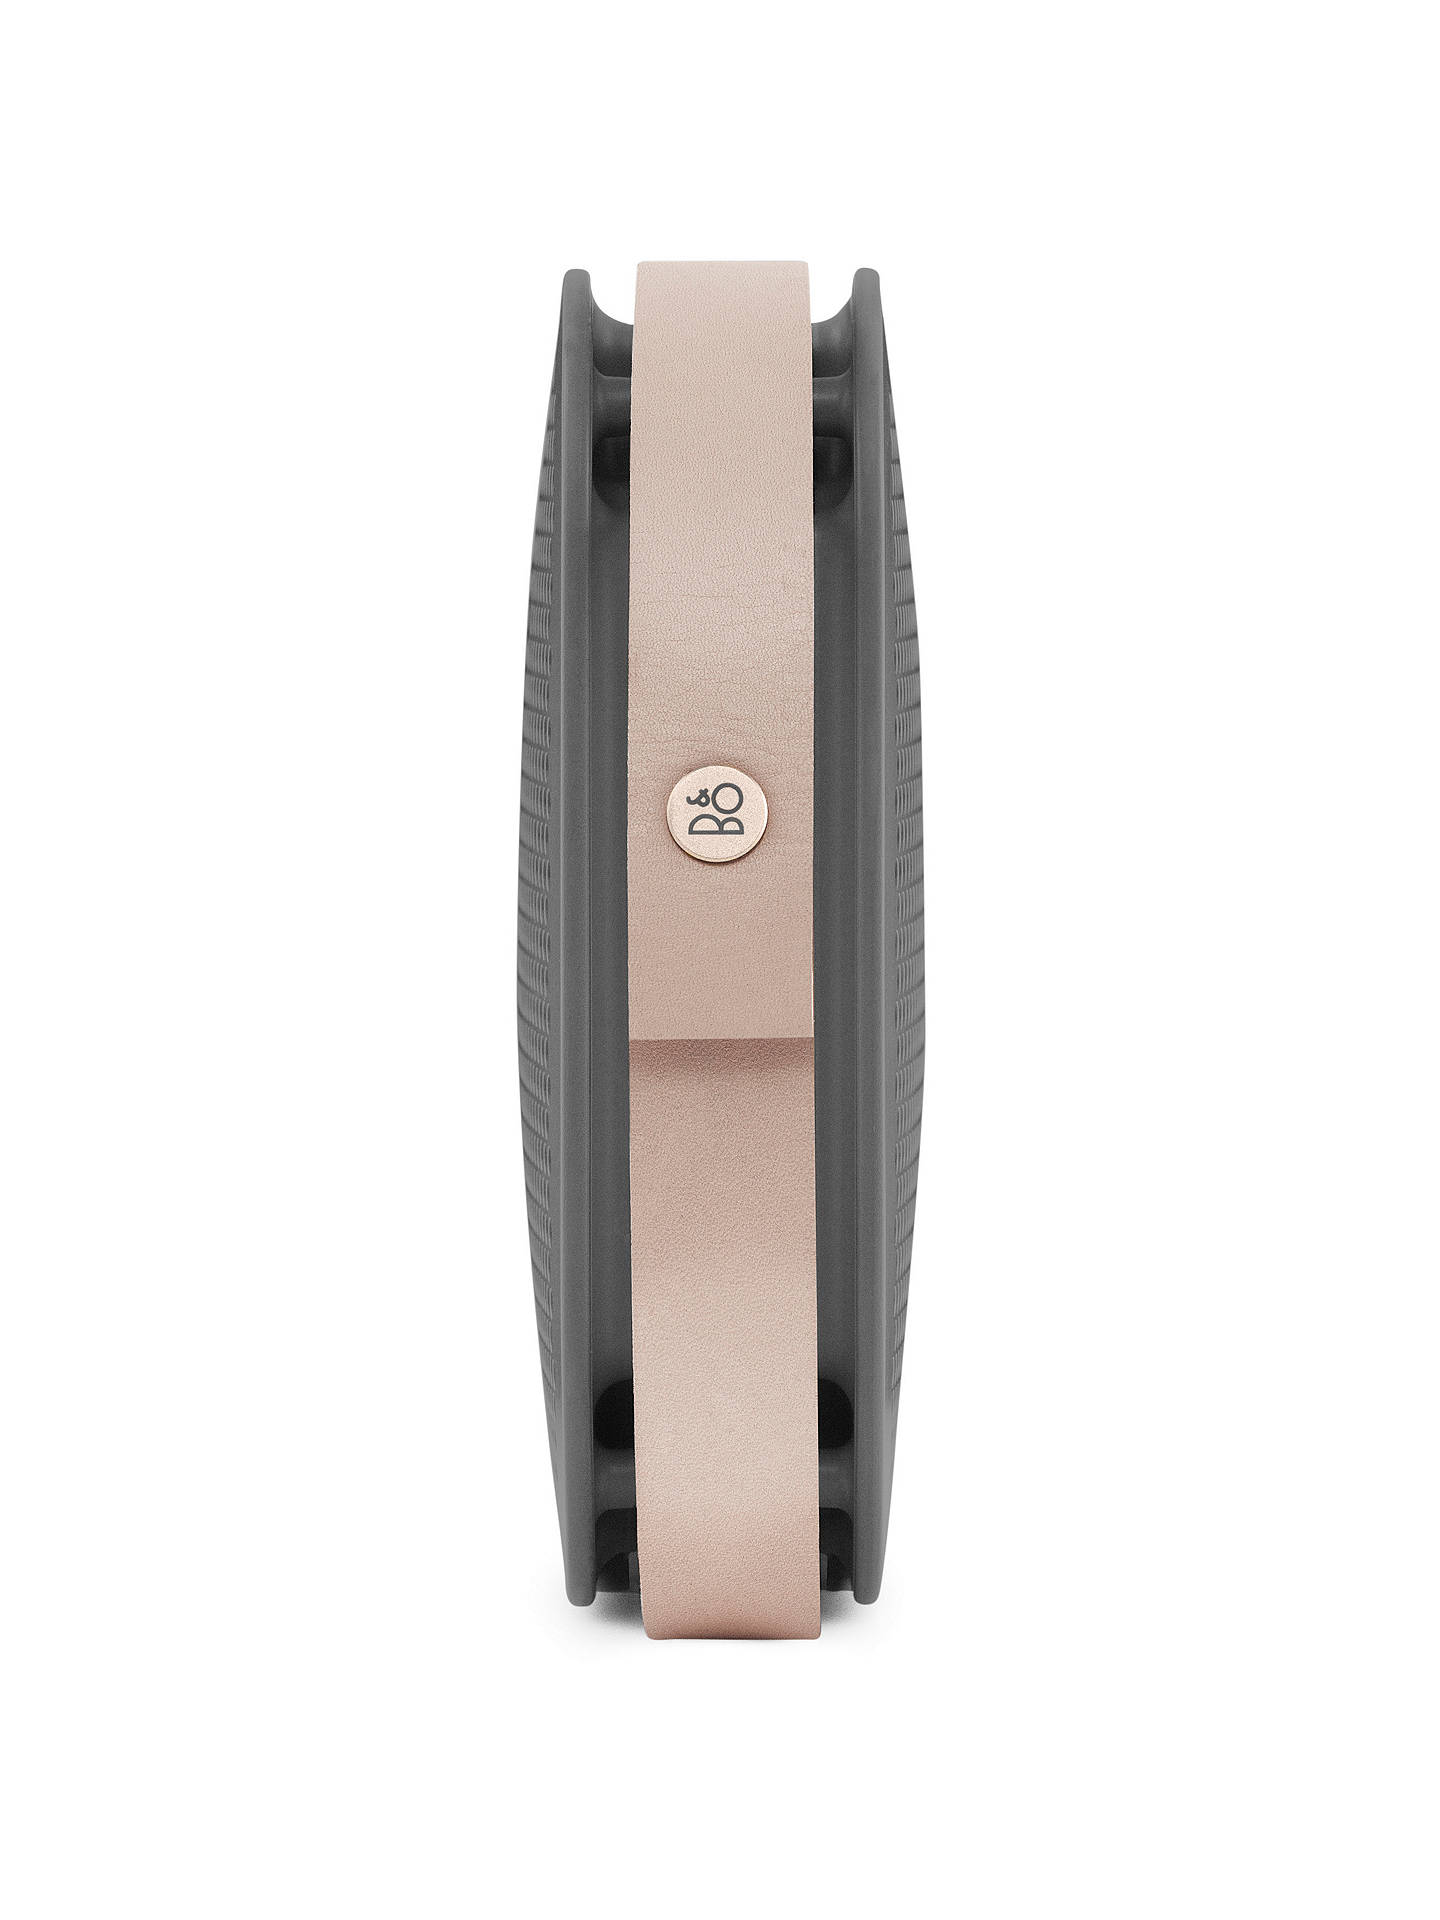 Buy Bang & Olufsen Beoplay A2 Active Portable Bluetooth Speaker, Charcoal Sand Online at johnlewis.com